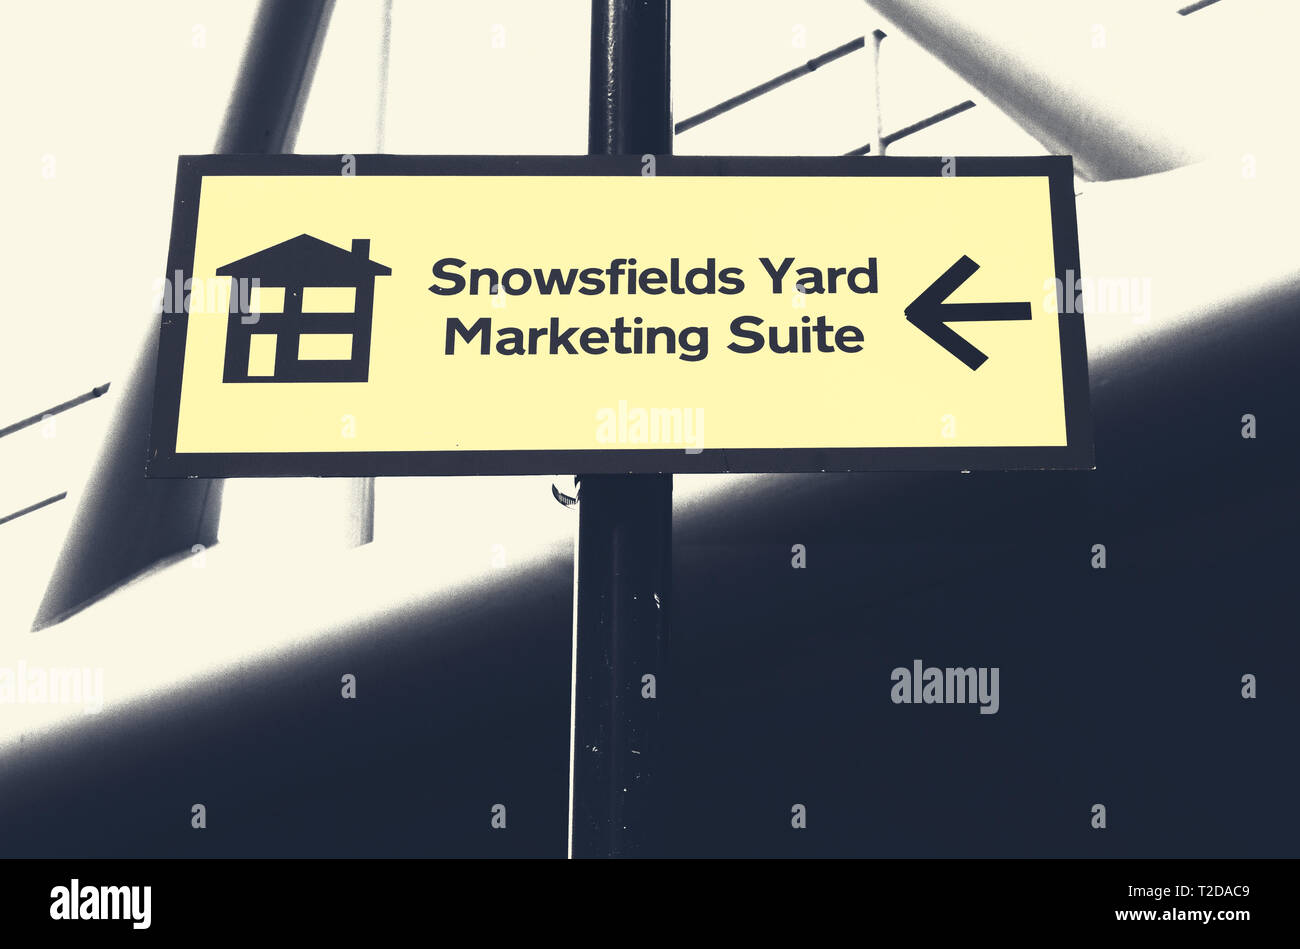 direction sign to the luxury urban quarter Snowsfields Yards Marketing Suite in London - Stock Image